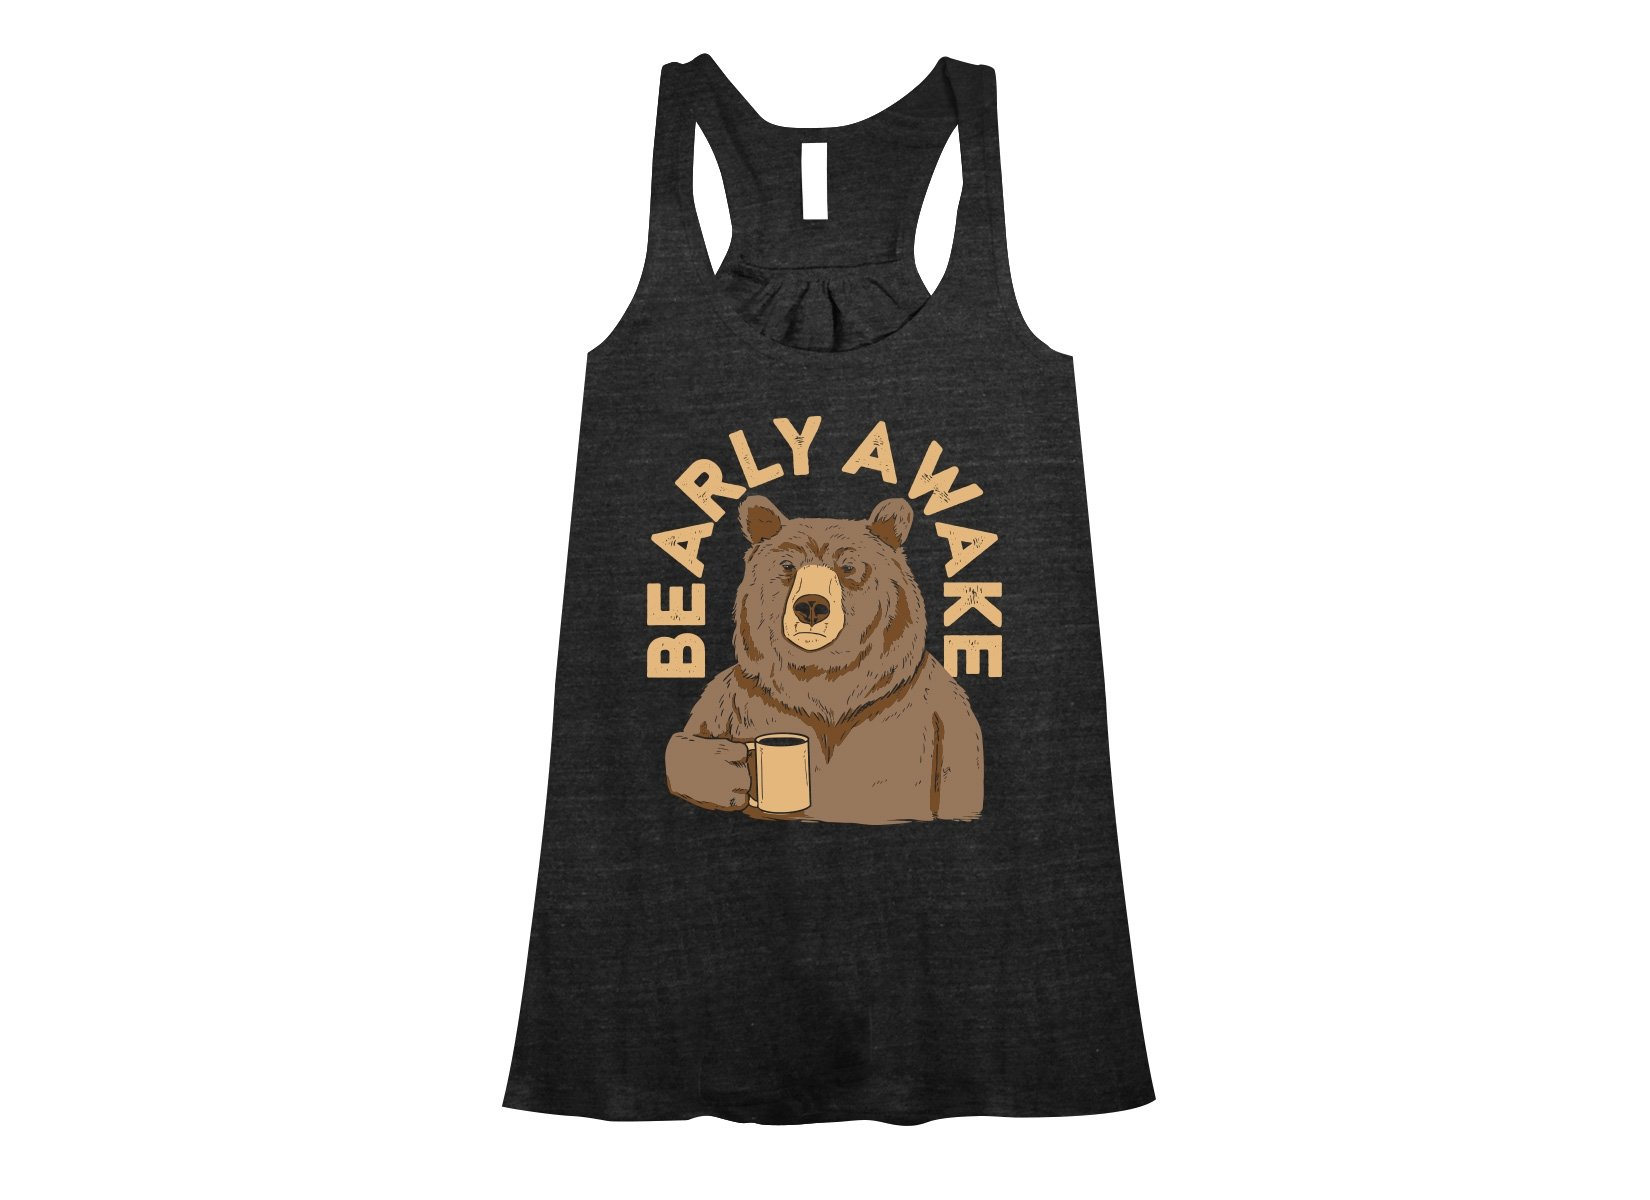 Bearly Awake on Womens Tanks T-Shirt